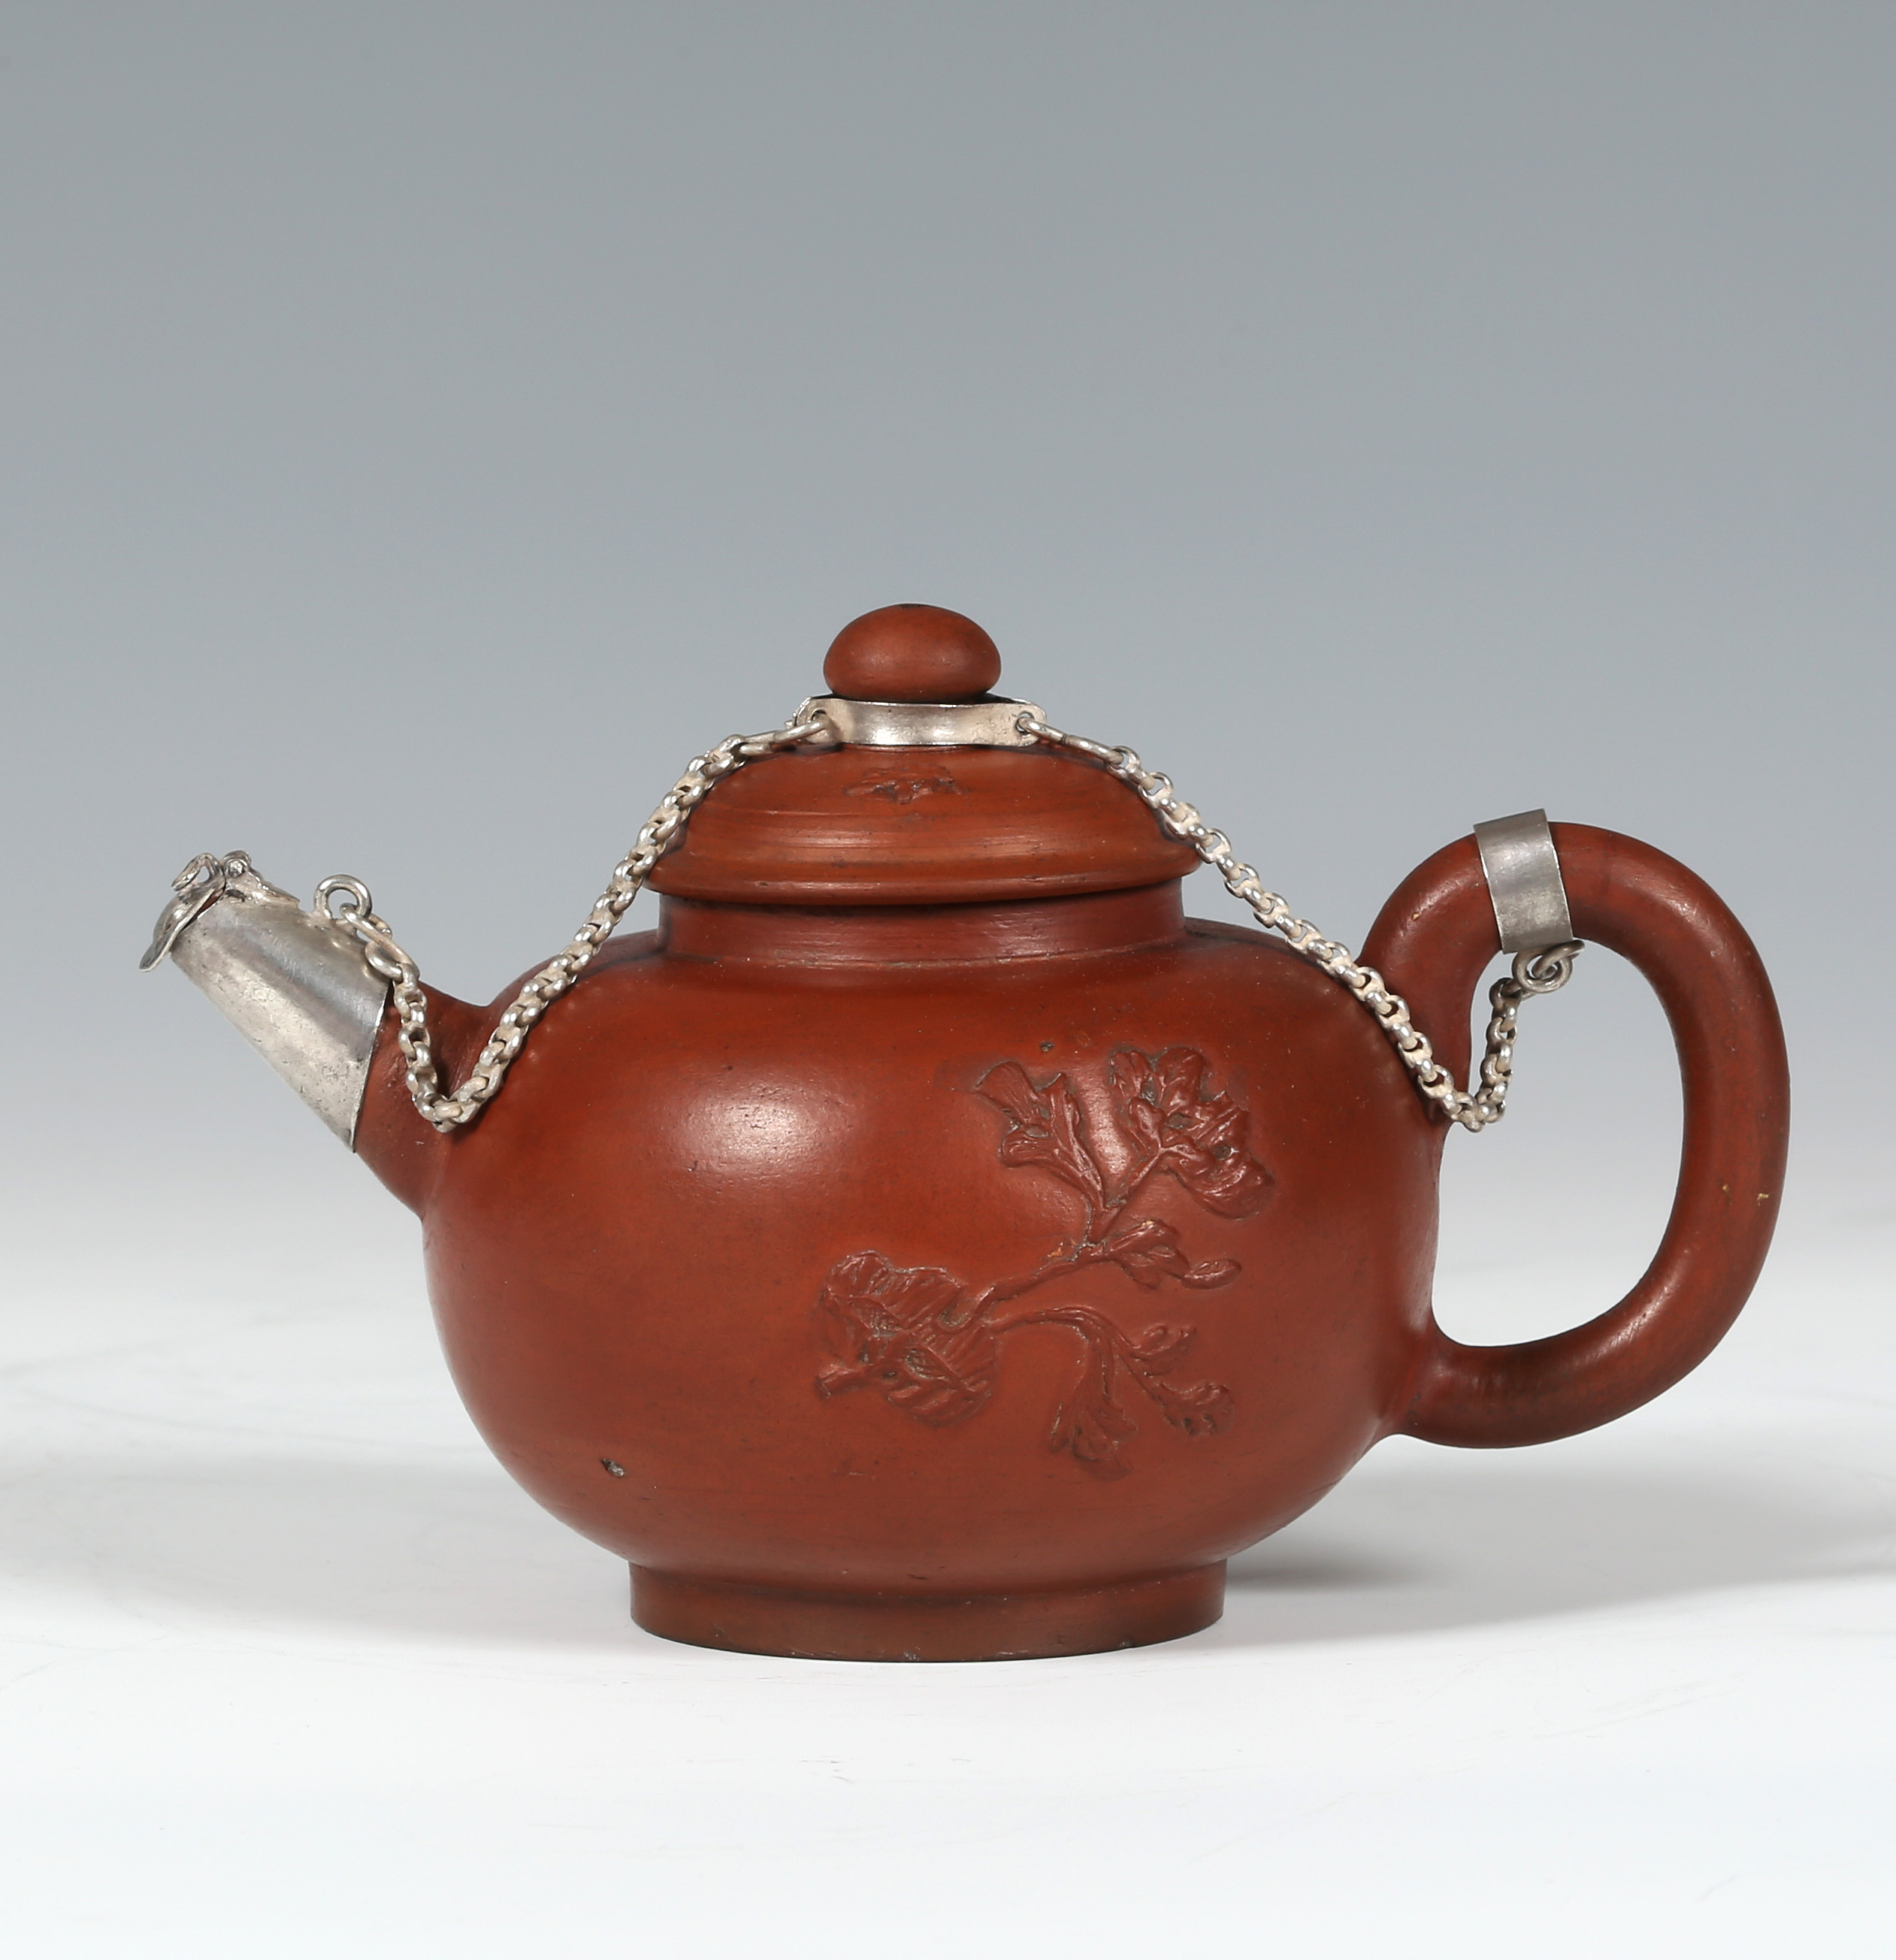 A SMALL SILVER-MOUNTED DUTCH REDWARE TEAPOT